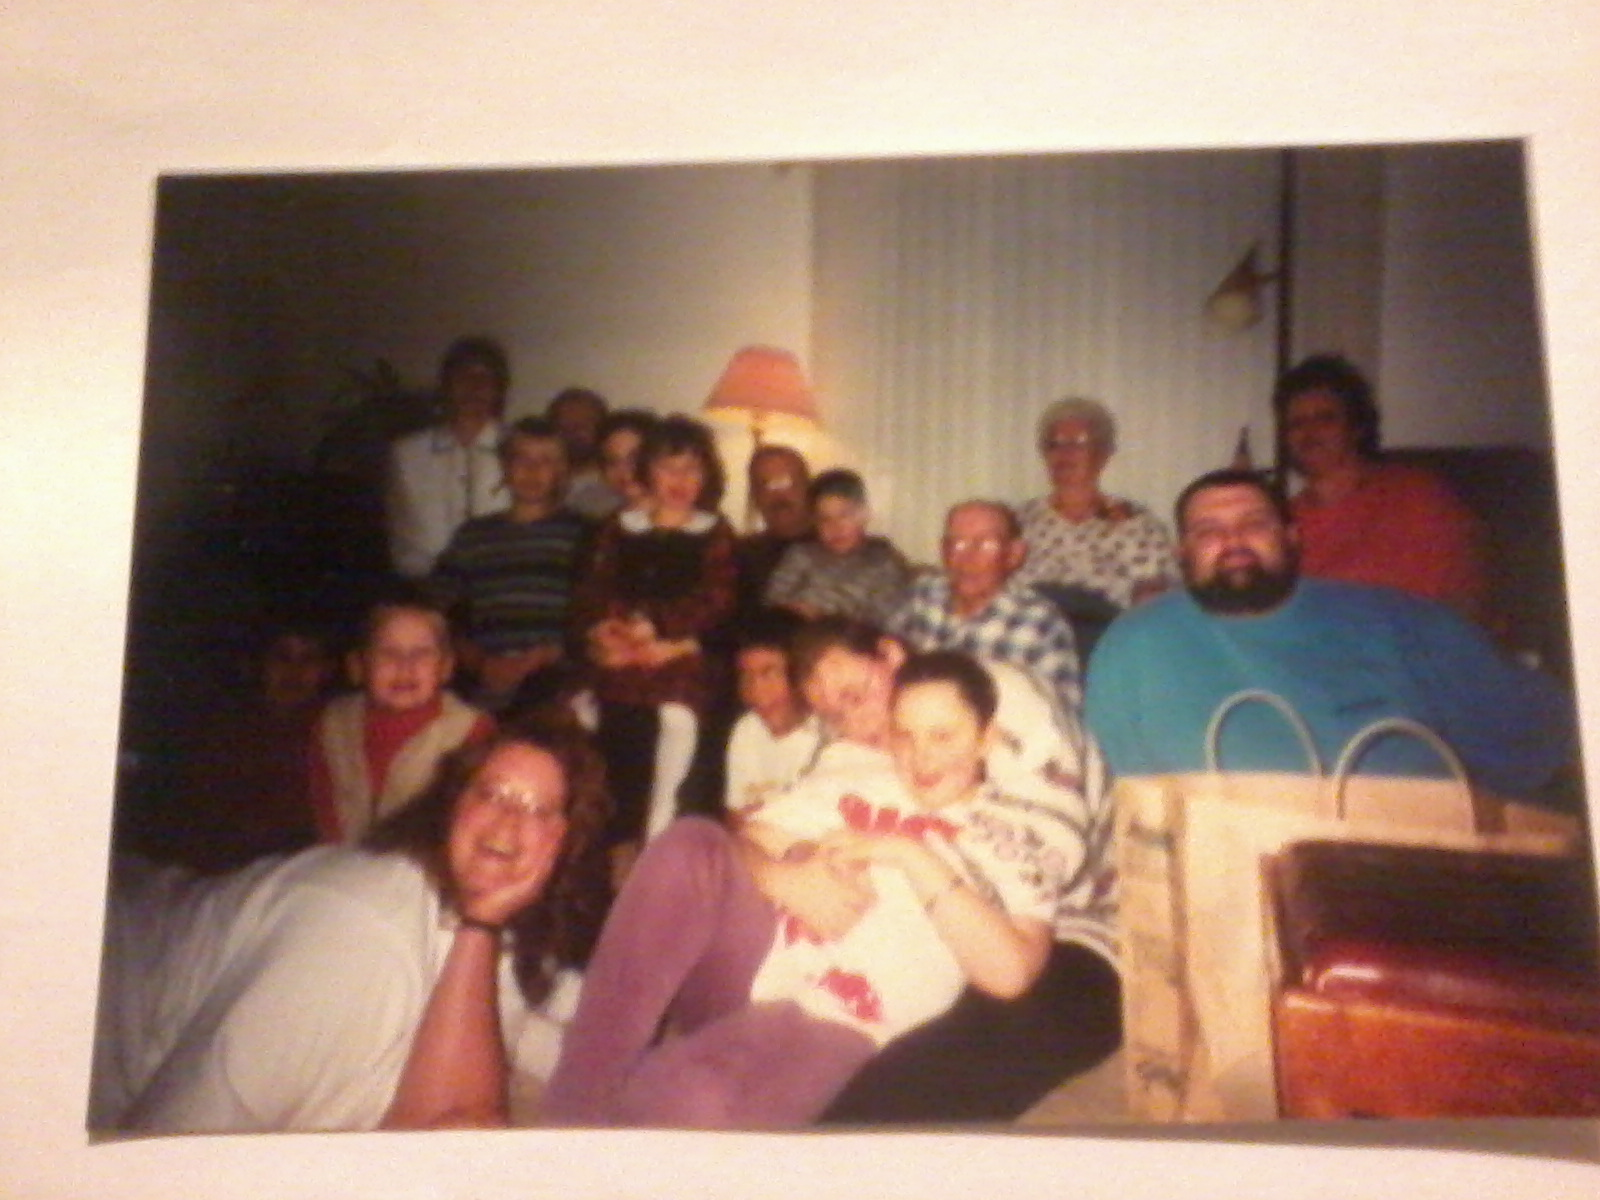 The family, together at my Grandpa's house, one Christmas years ago...